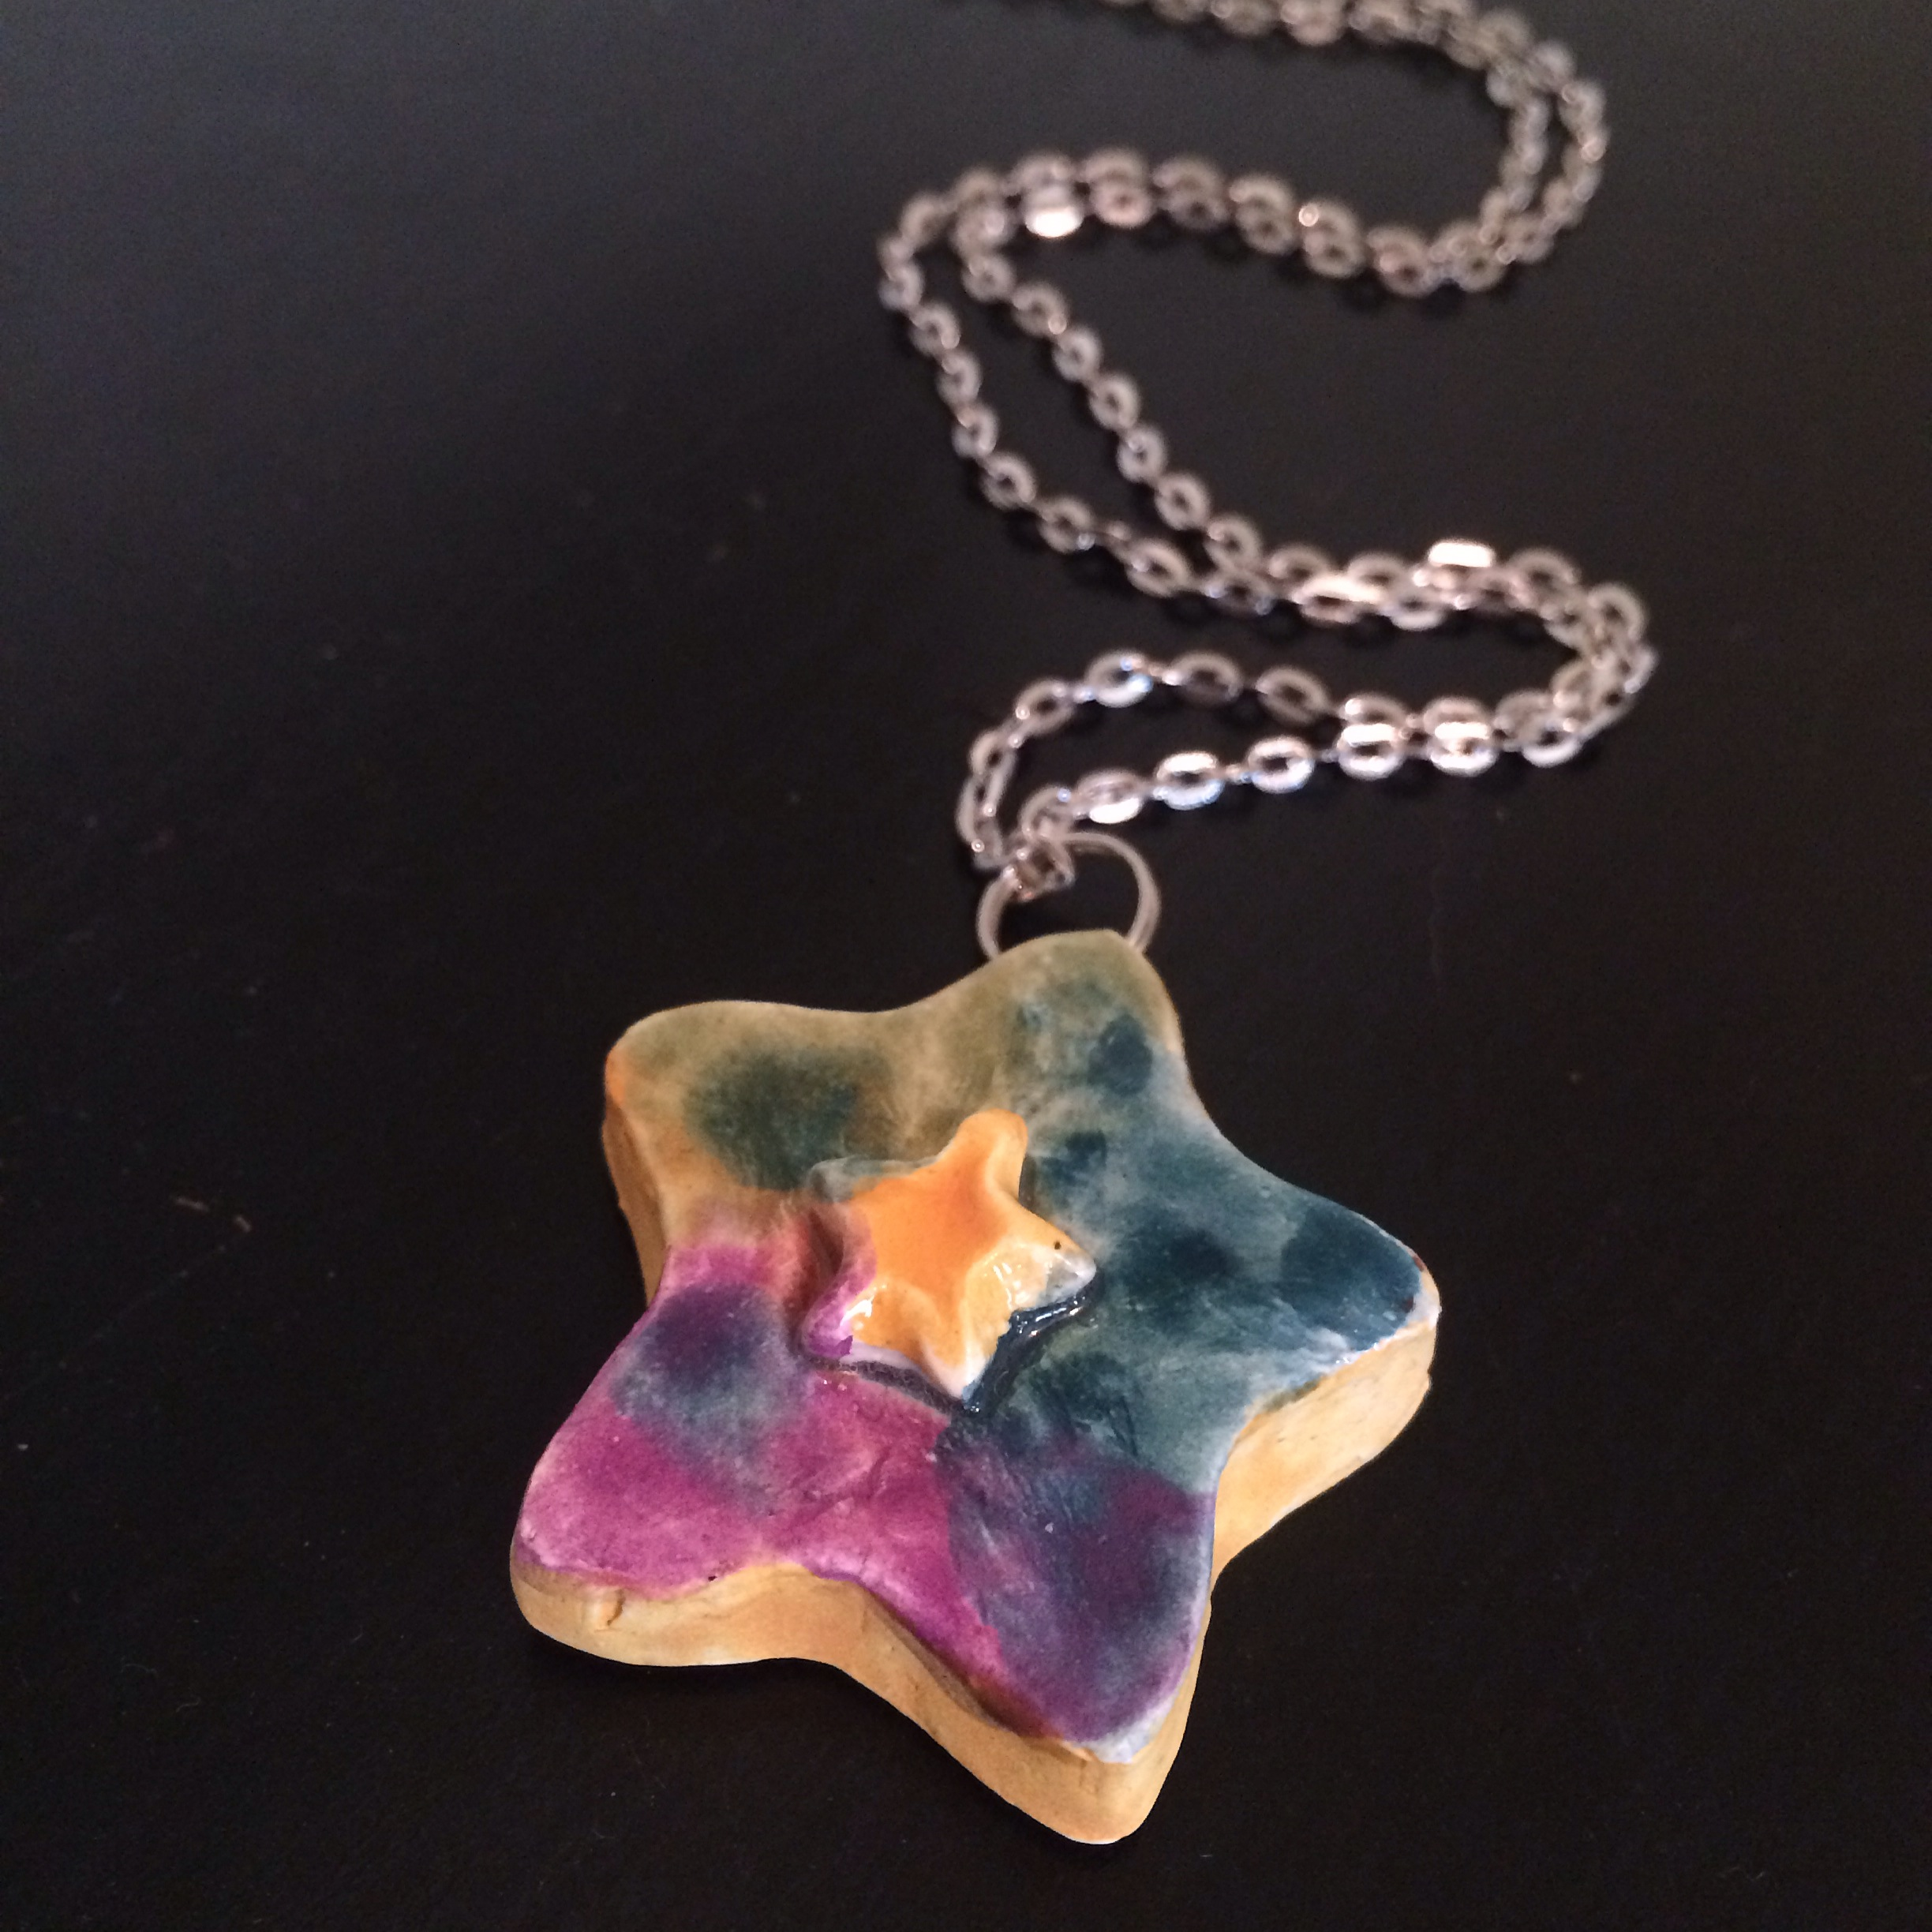 201601 Star Necklace 01